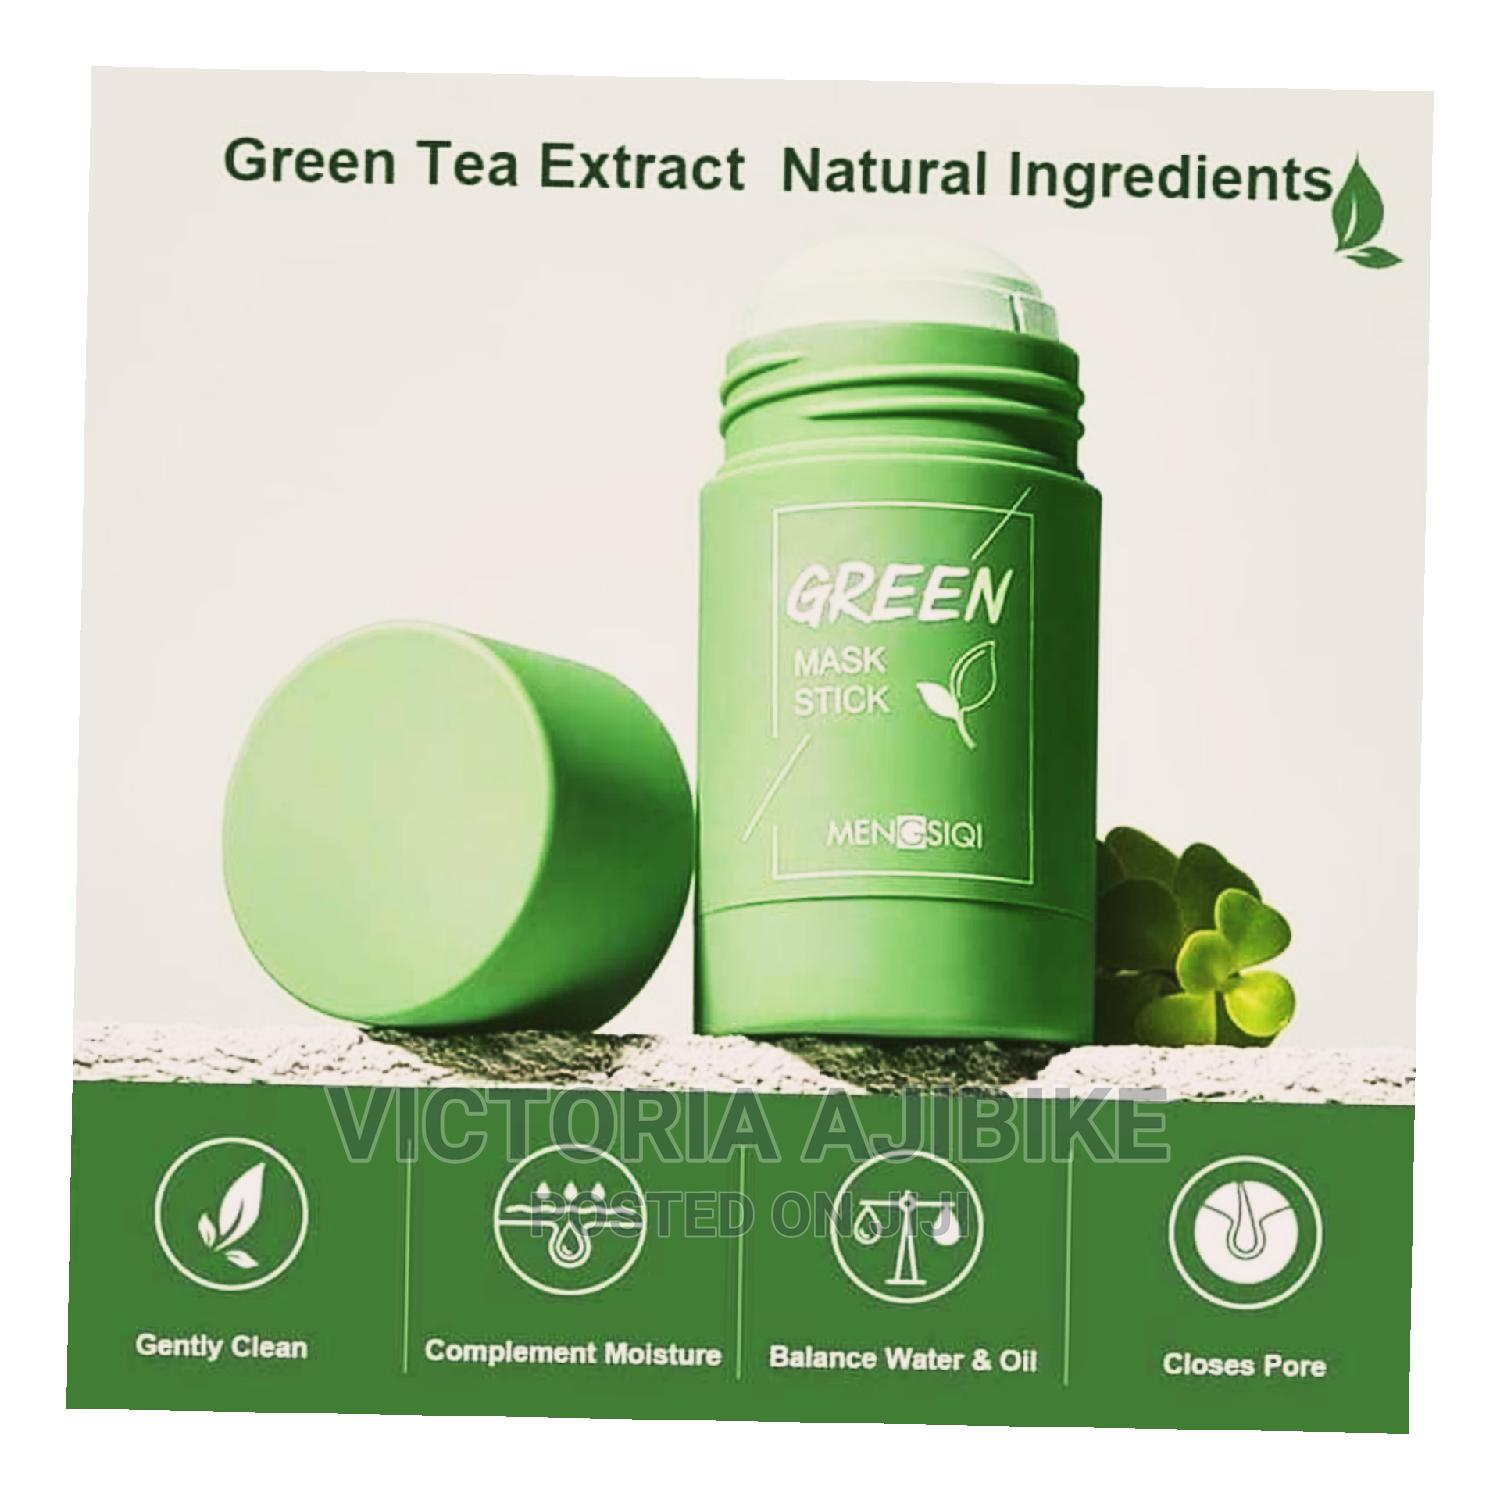 100% Green Tea Mask Stick. Very Effective and Selling Fast